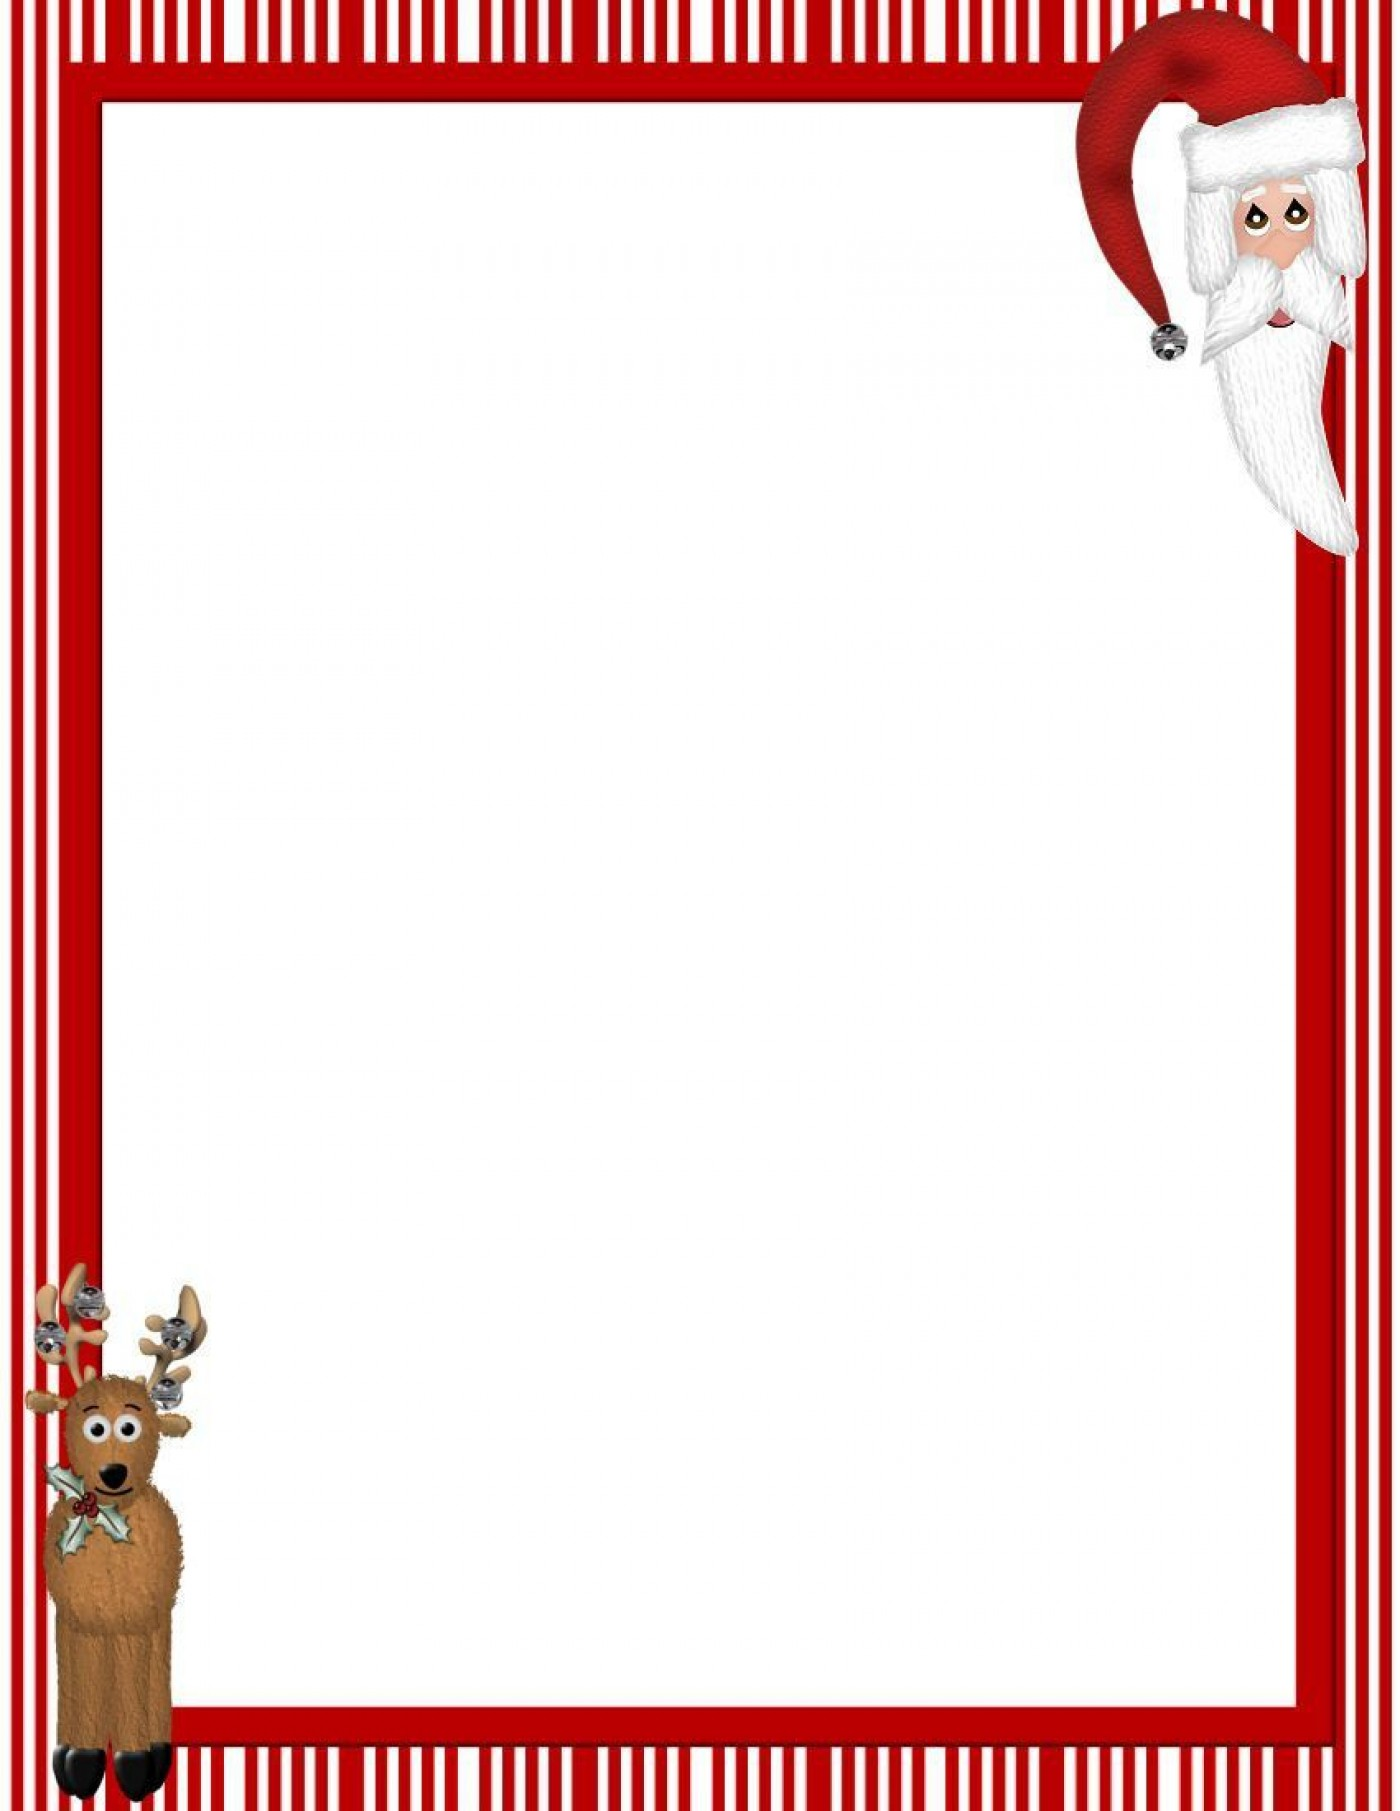 008 Imposing Free Holiday Stationery Template For Word High Definition 1400